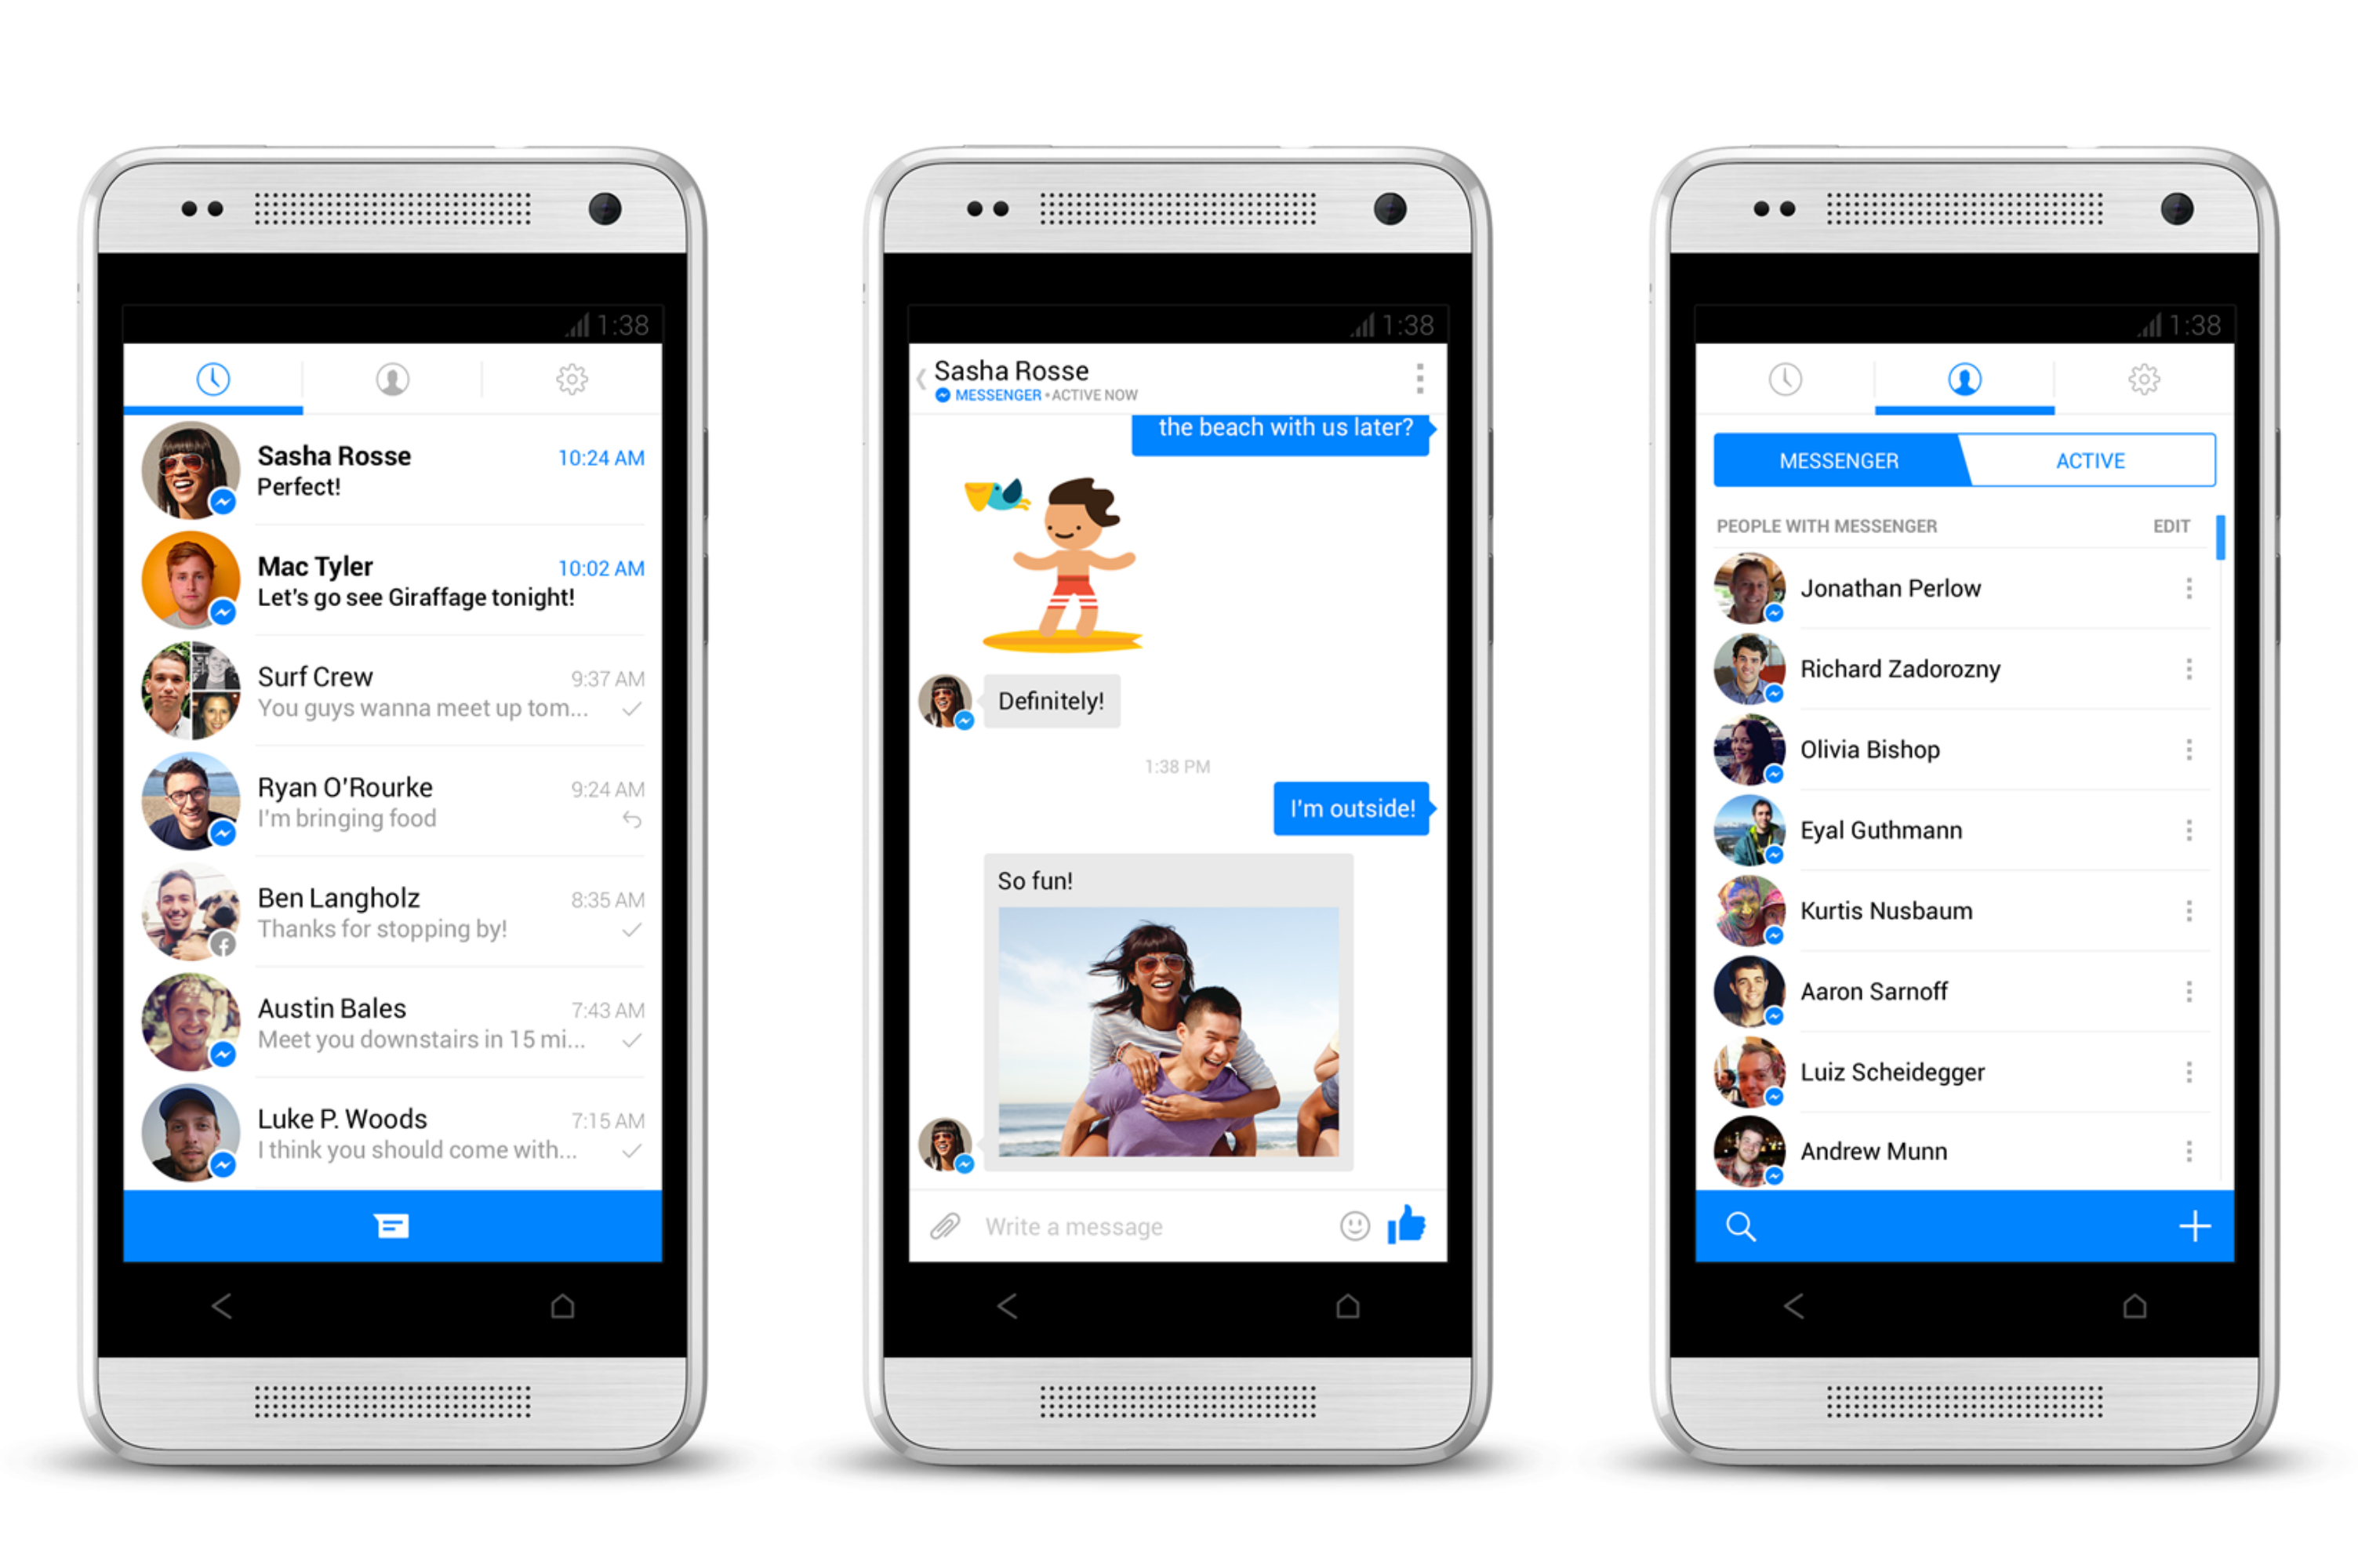 Facebook Messenger adds free WiFi calling in latest update (other goodies too)